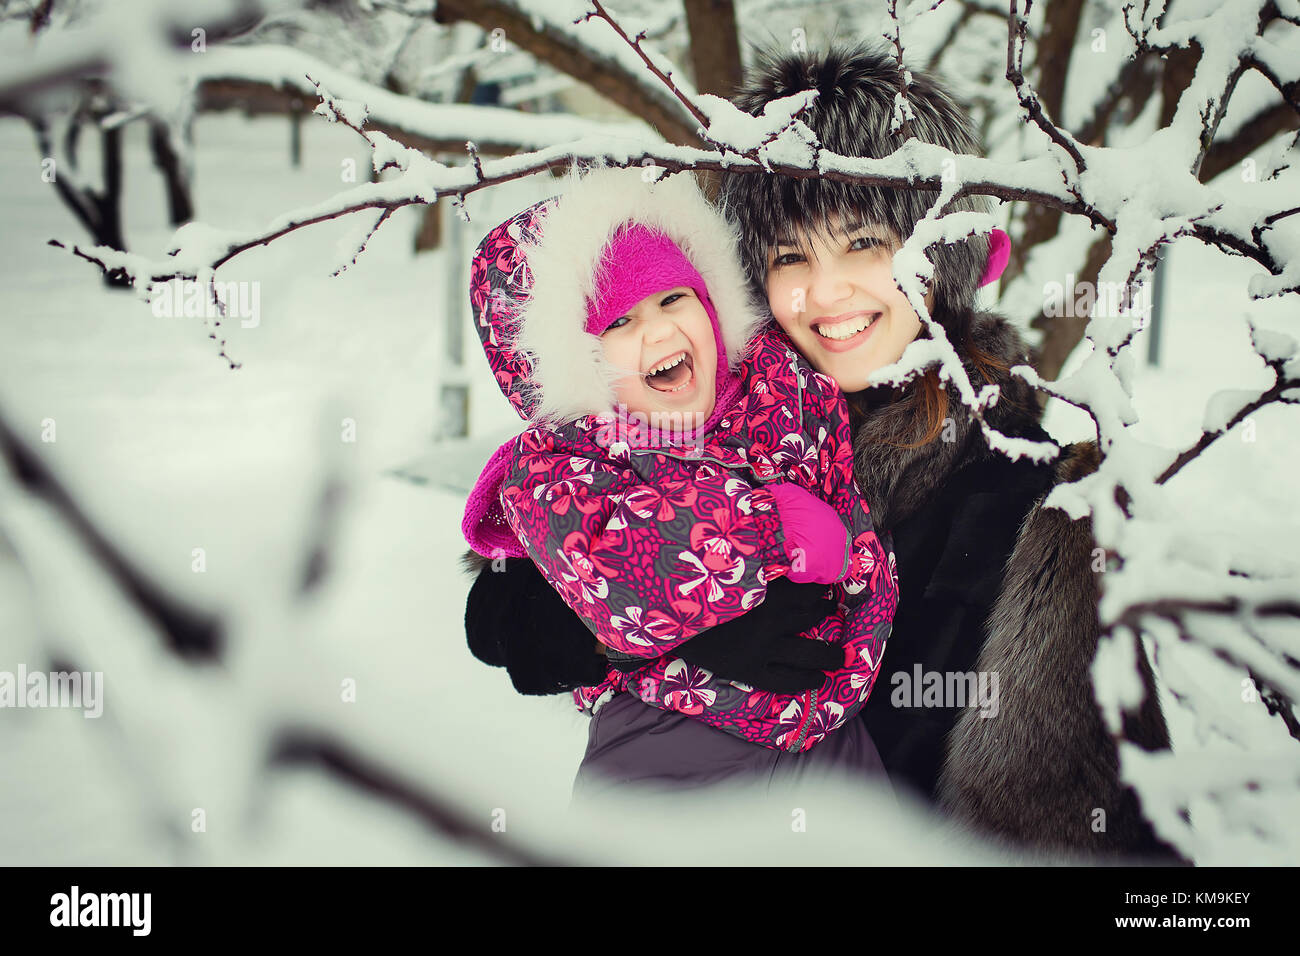 mom with kid spending time in winter park - Stock Image